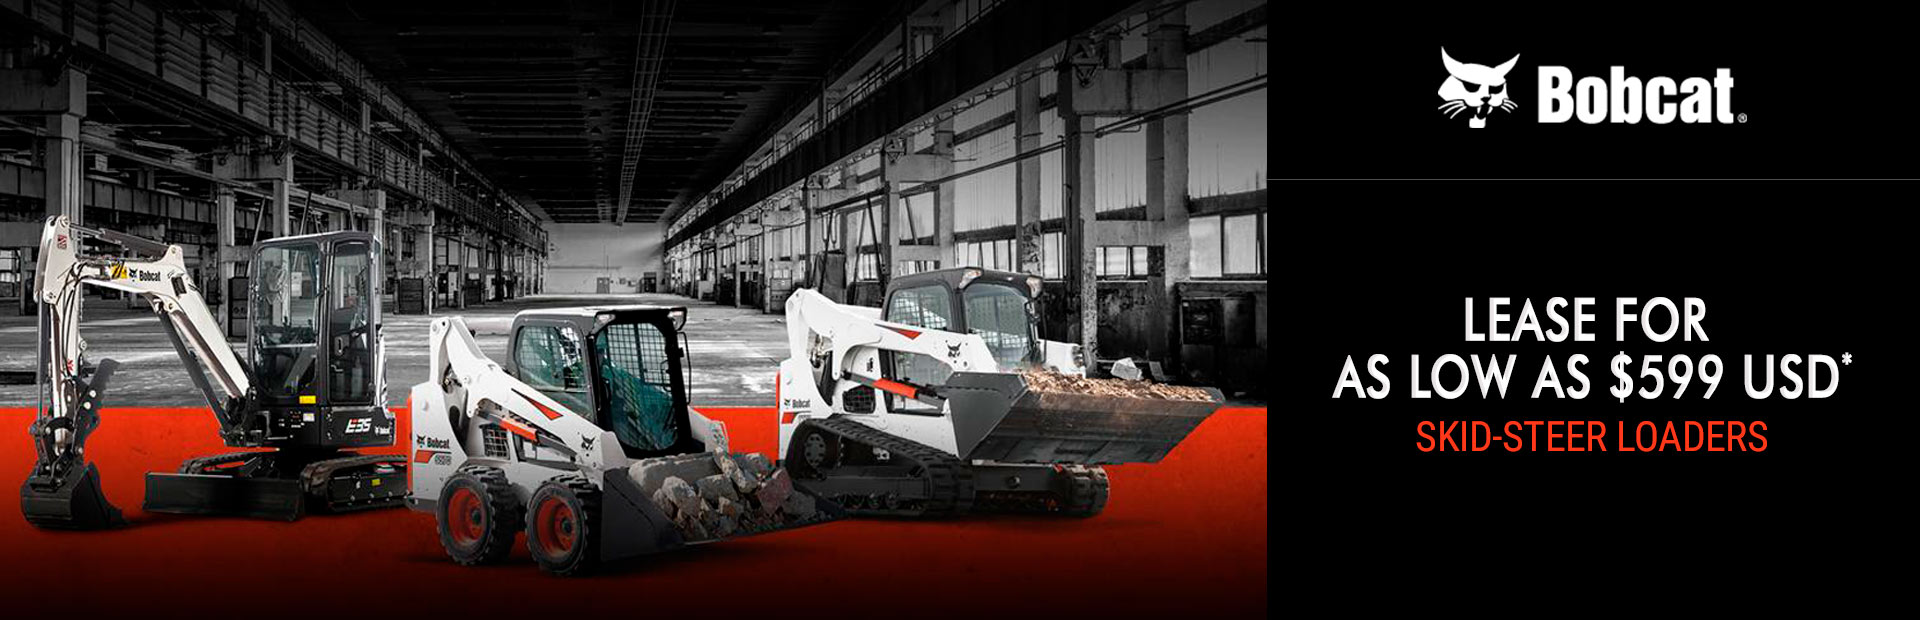 Bobcat: Lease Bobcat Skid-Steer Loaders